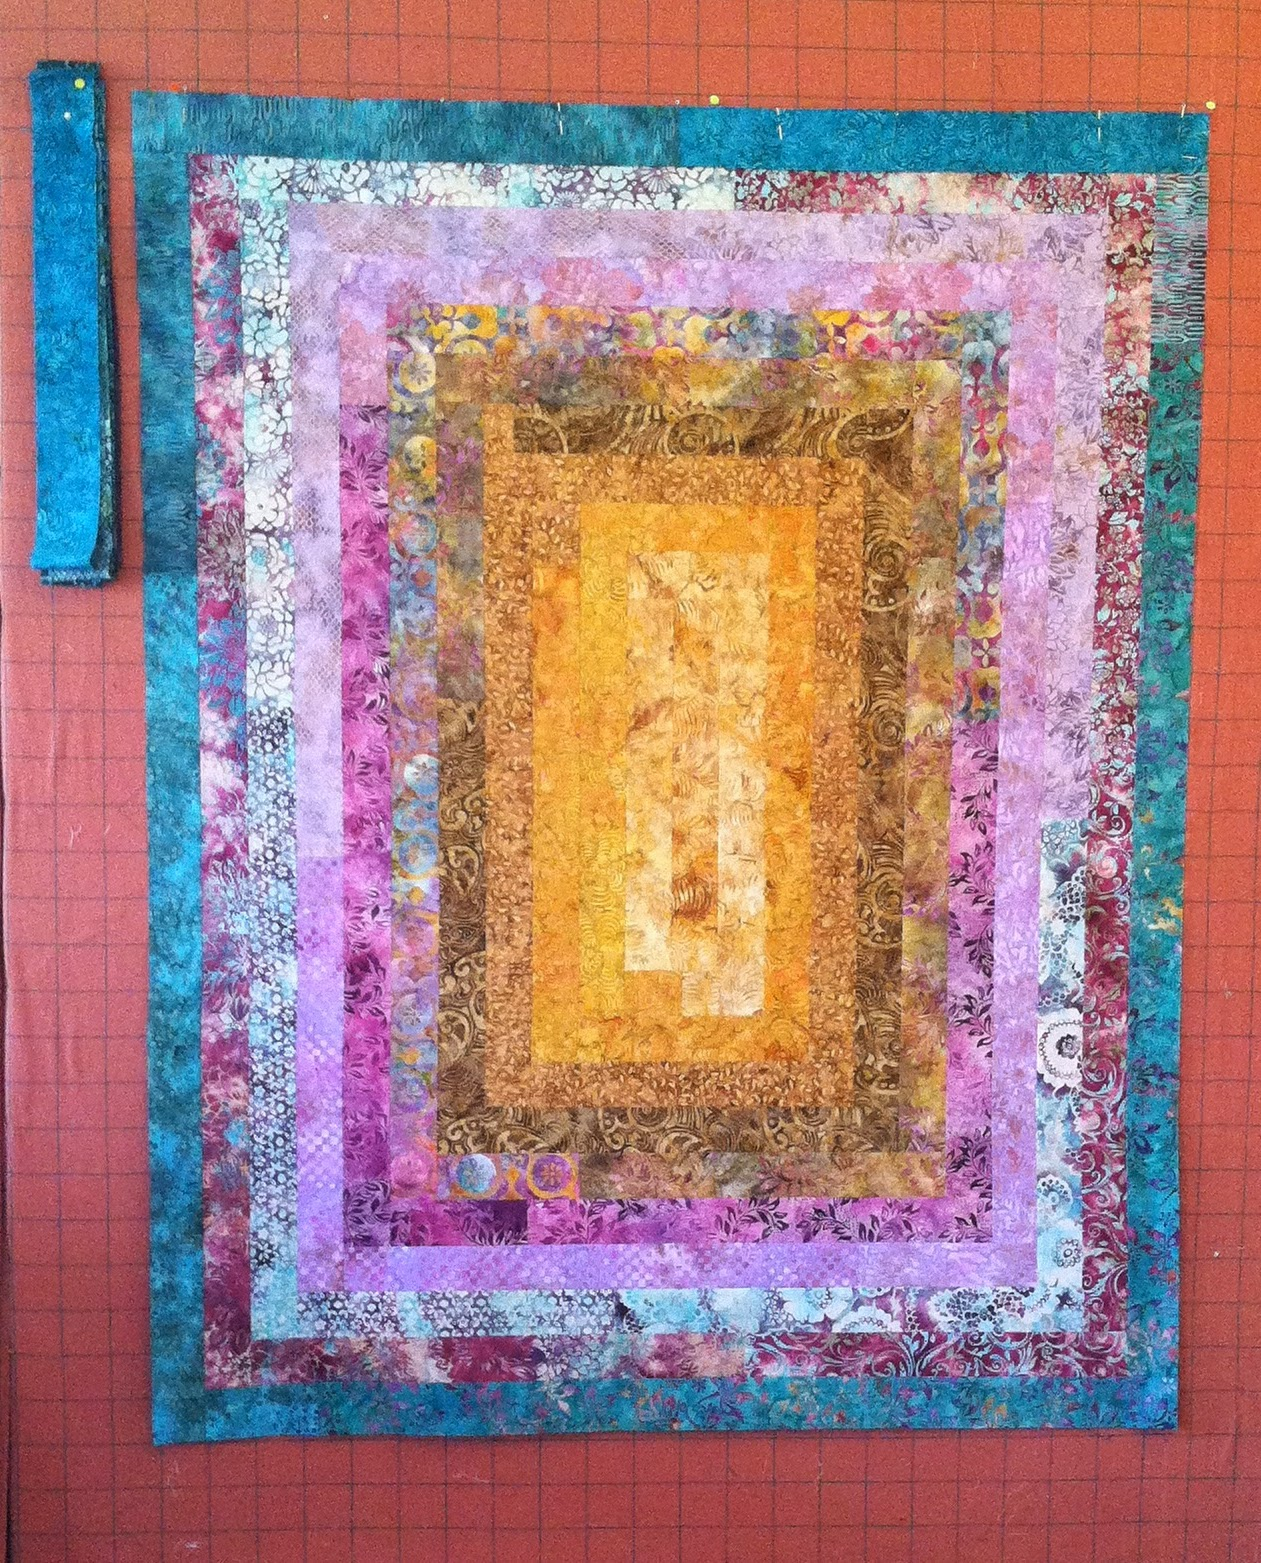 Jelly Roll Quilt - I love the colorwash effect these strips provide